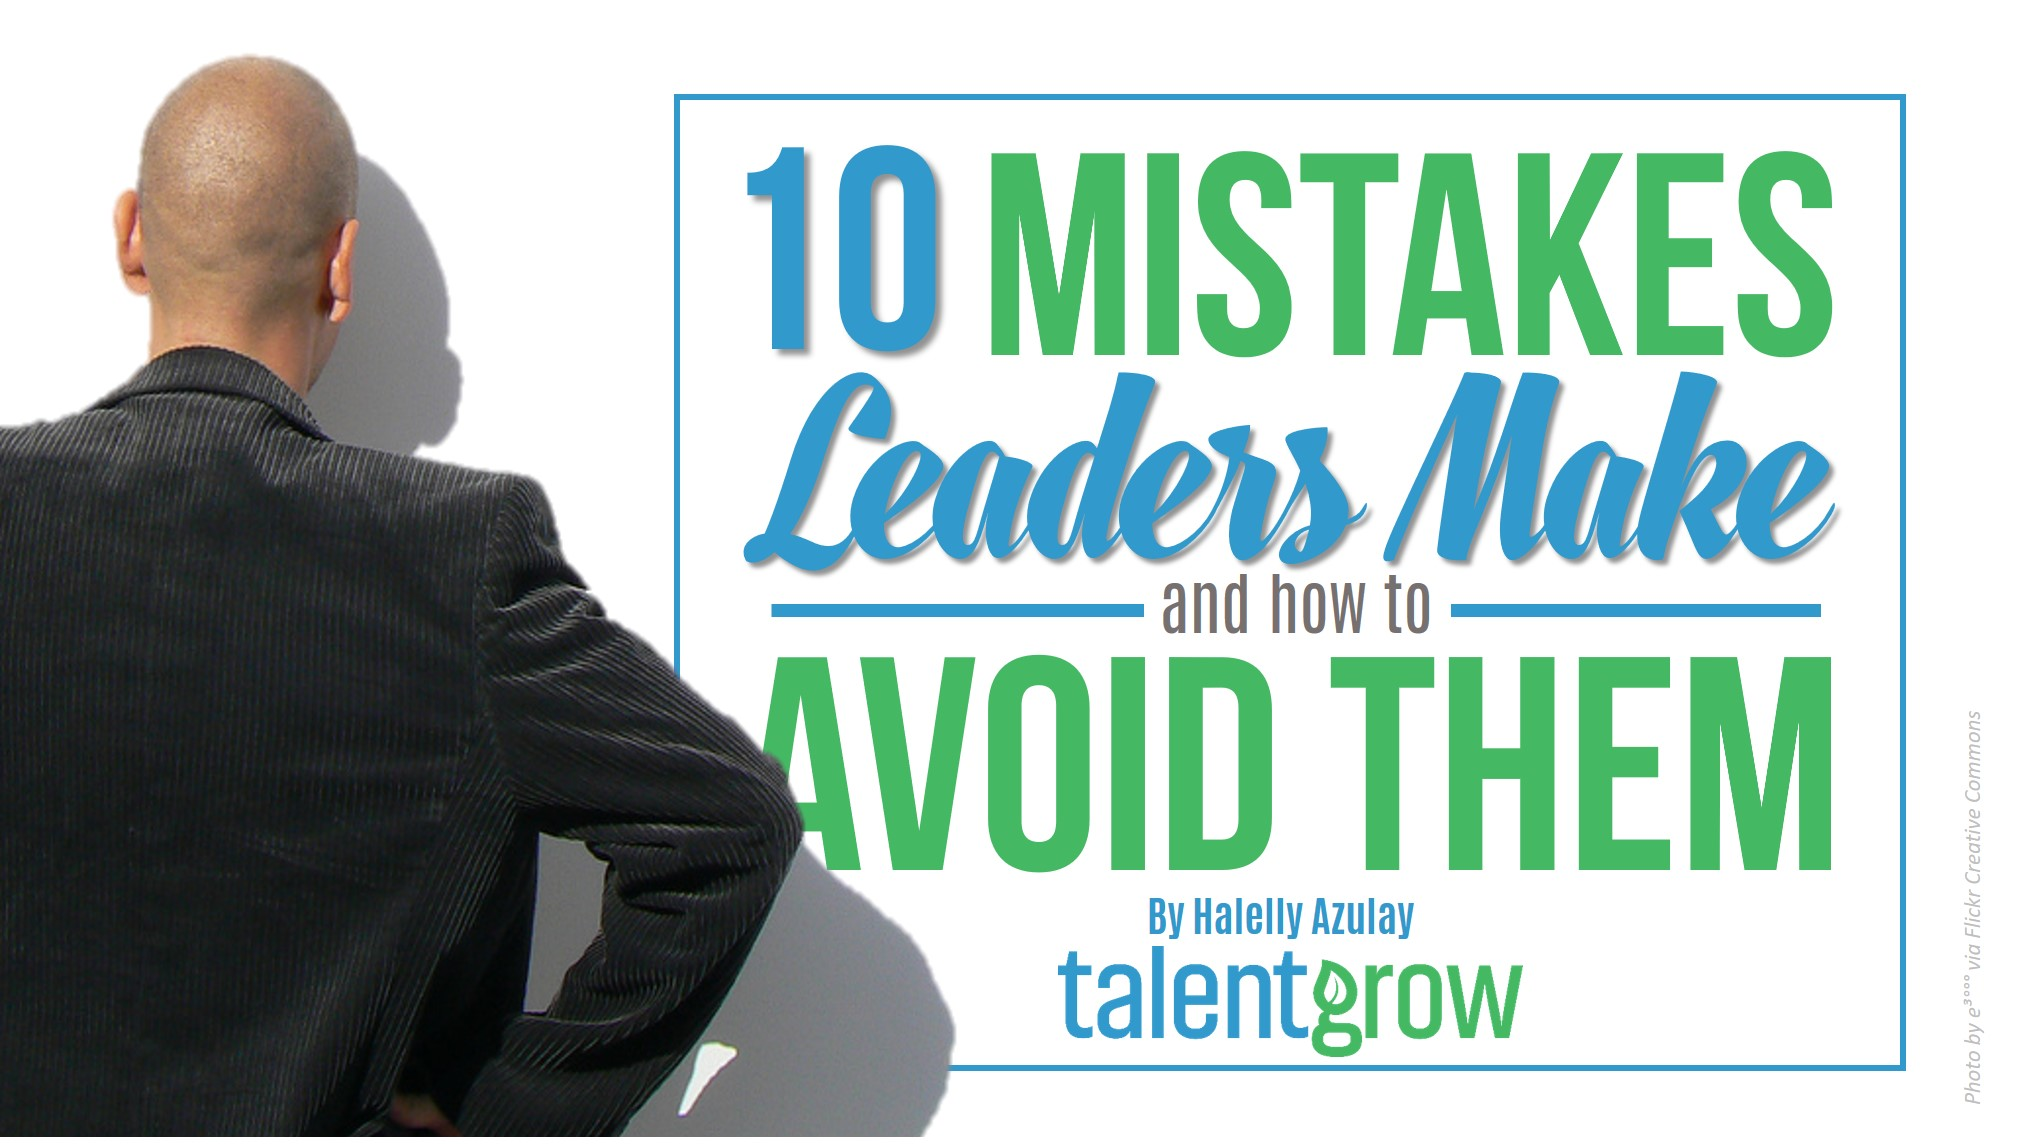 10 Mistakes Leaders Make and How to Avoid Them cover 2018.jpg